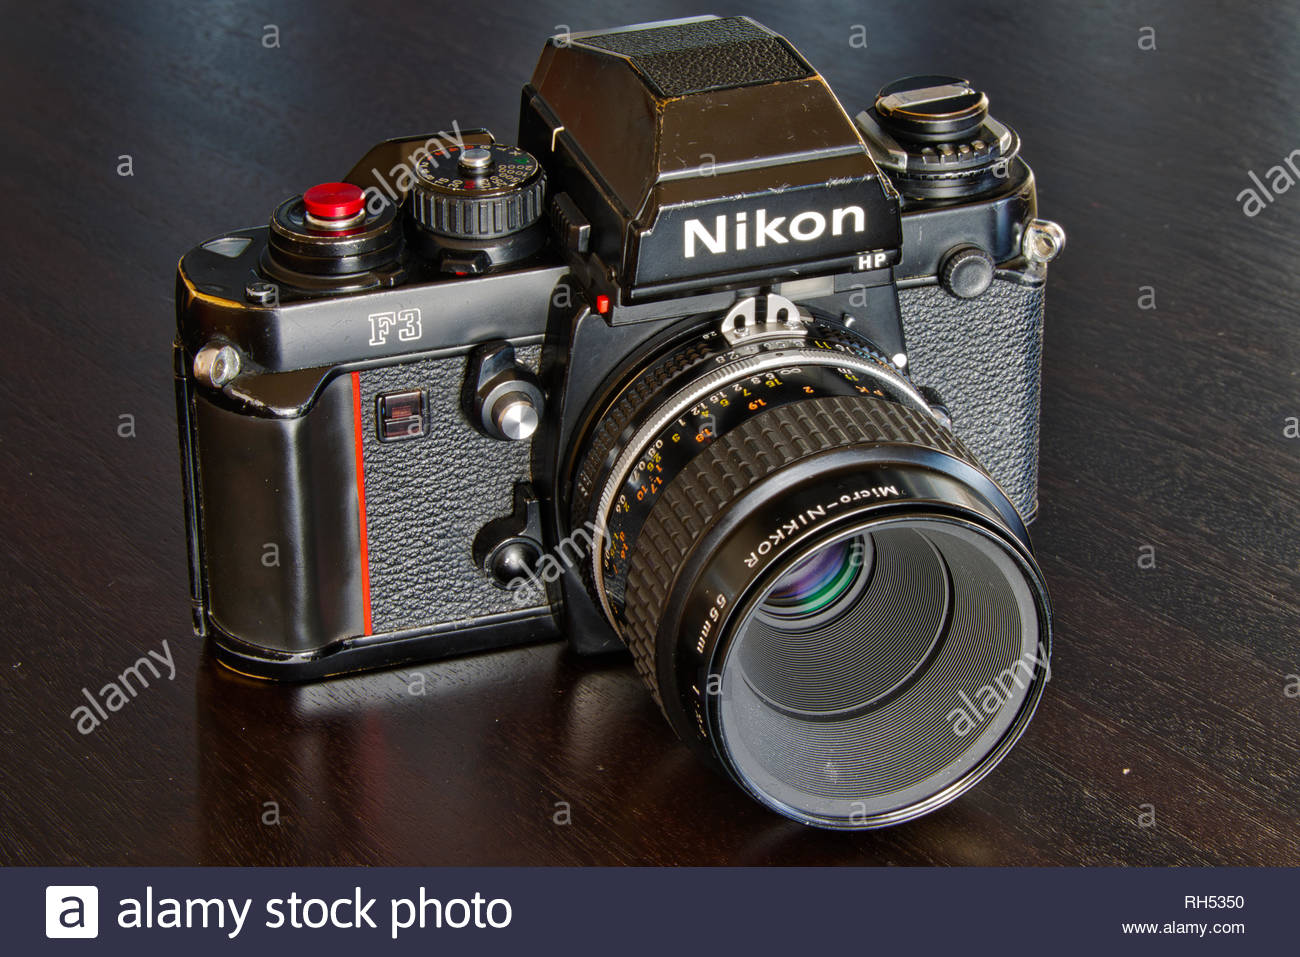 Nikon F3 HP - Stock Image